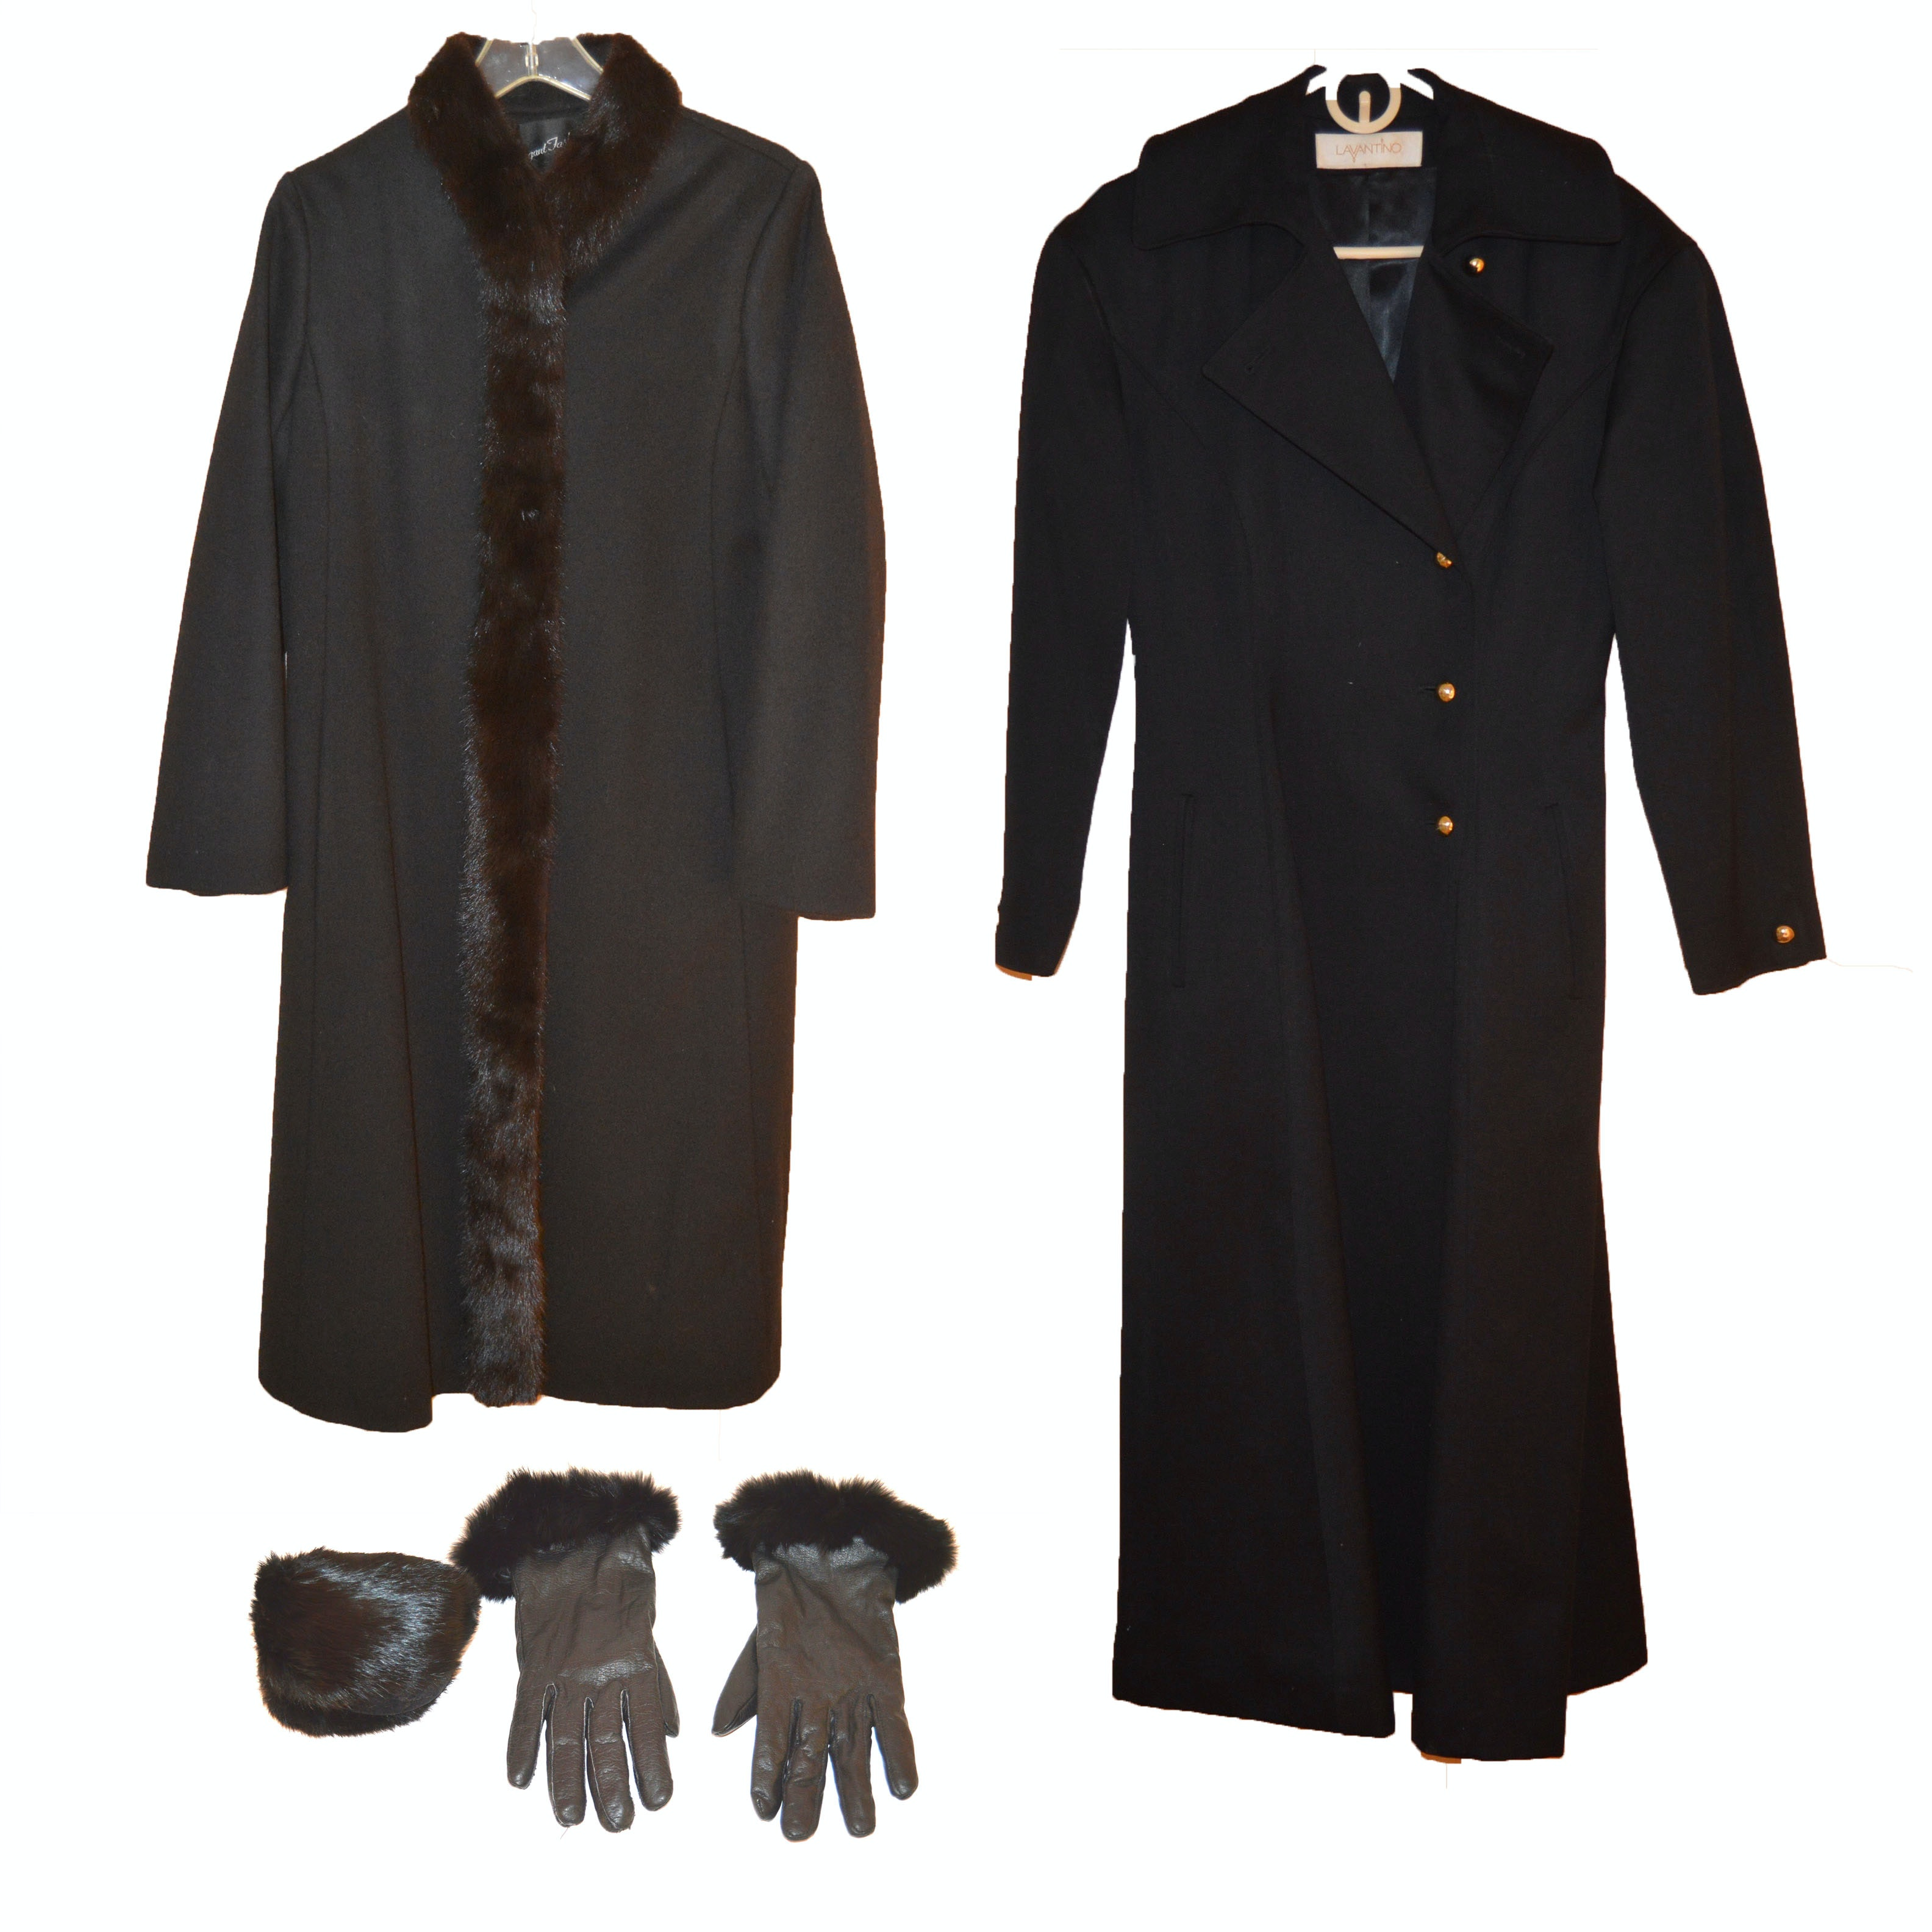 Pair of Trench Coats, One with Mink Trim and Rabbit Fur Accessories